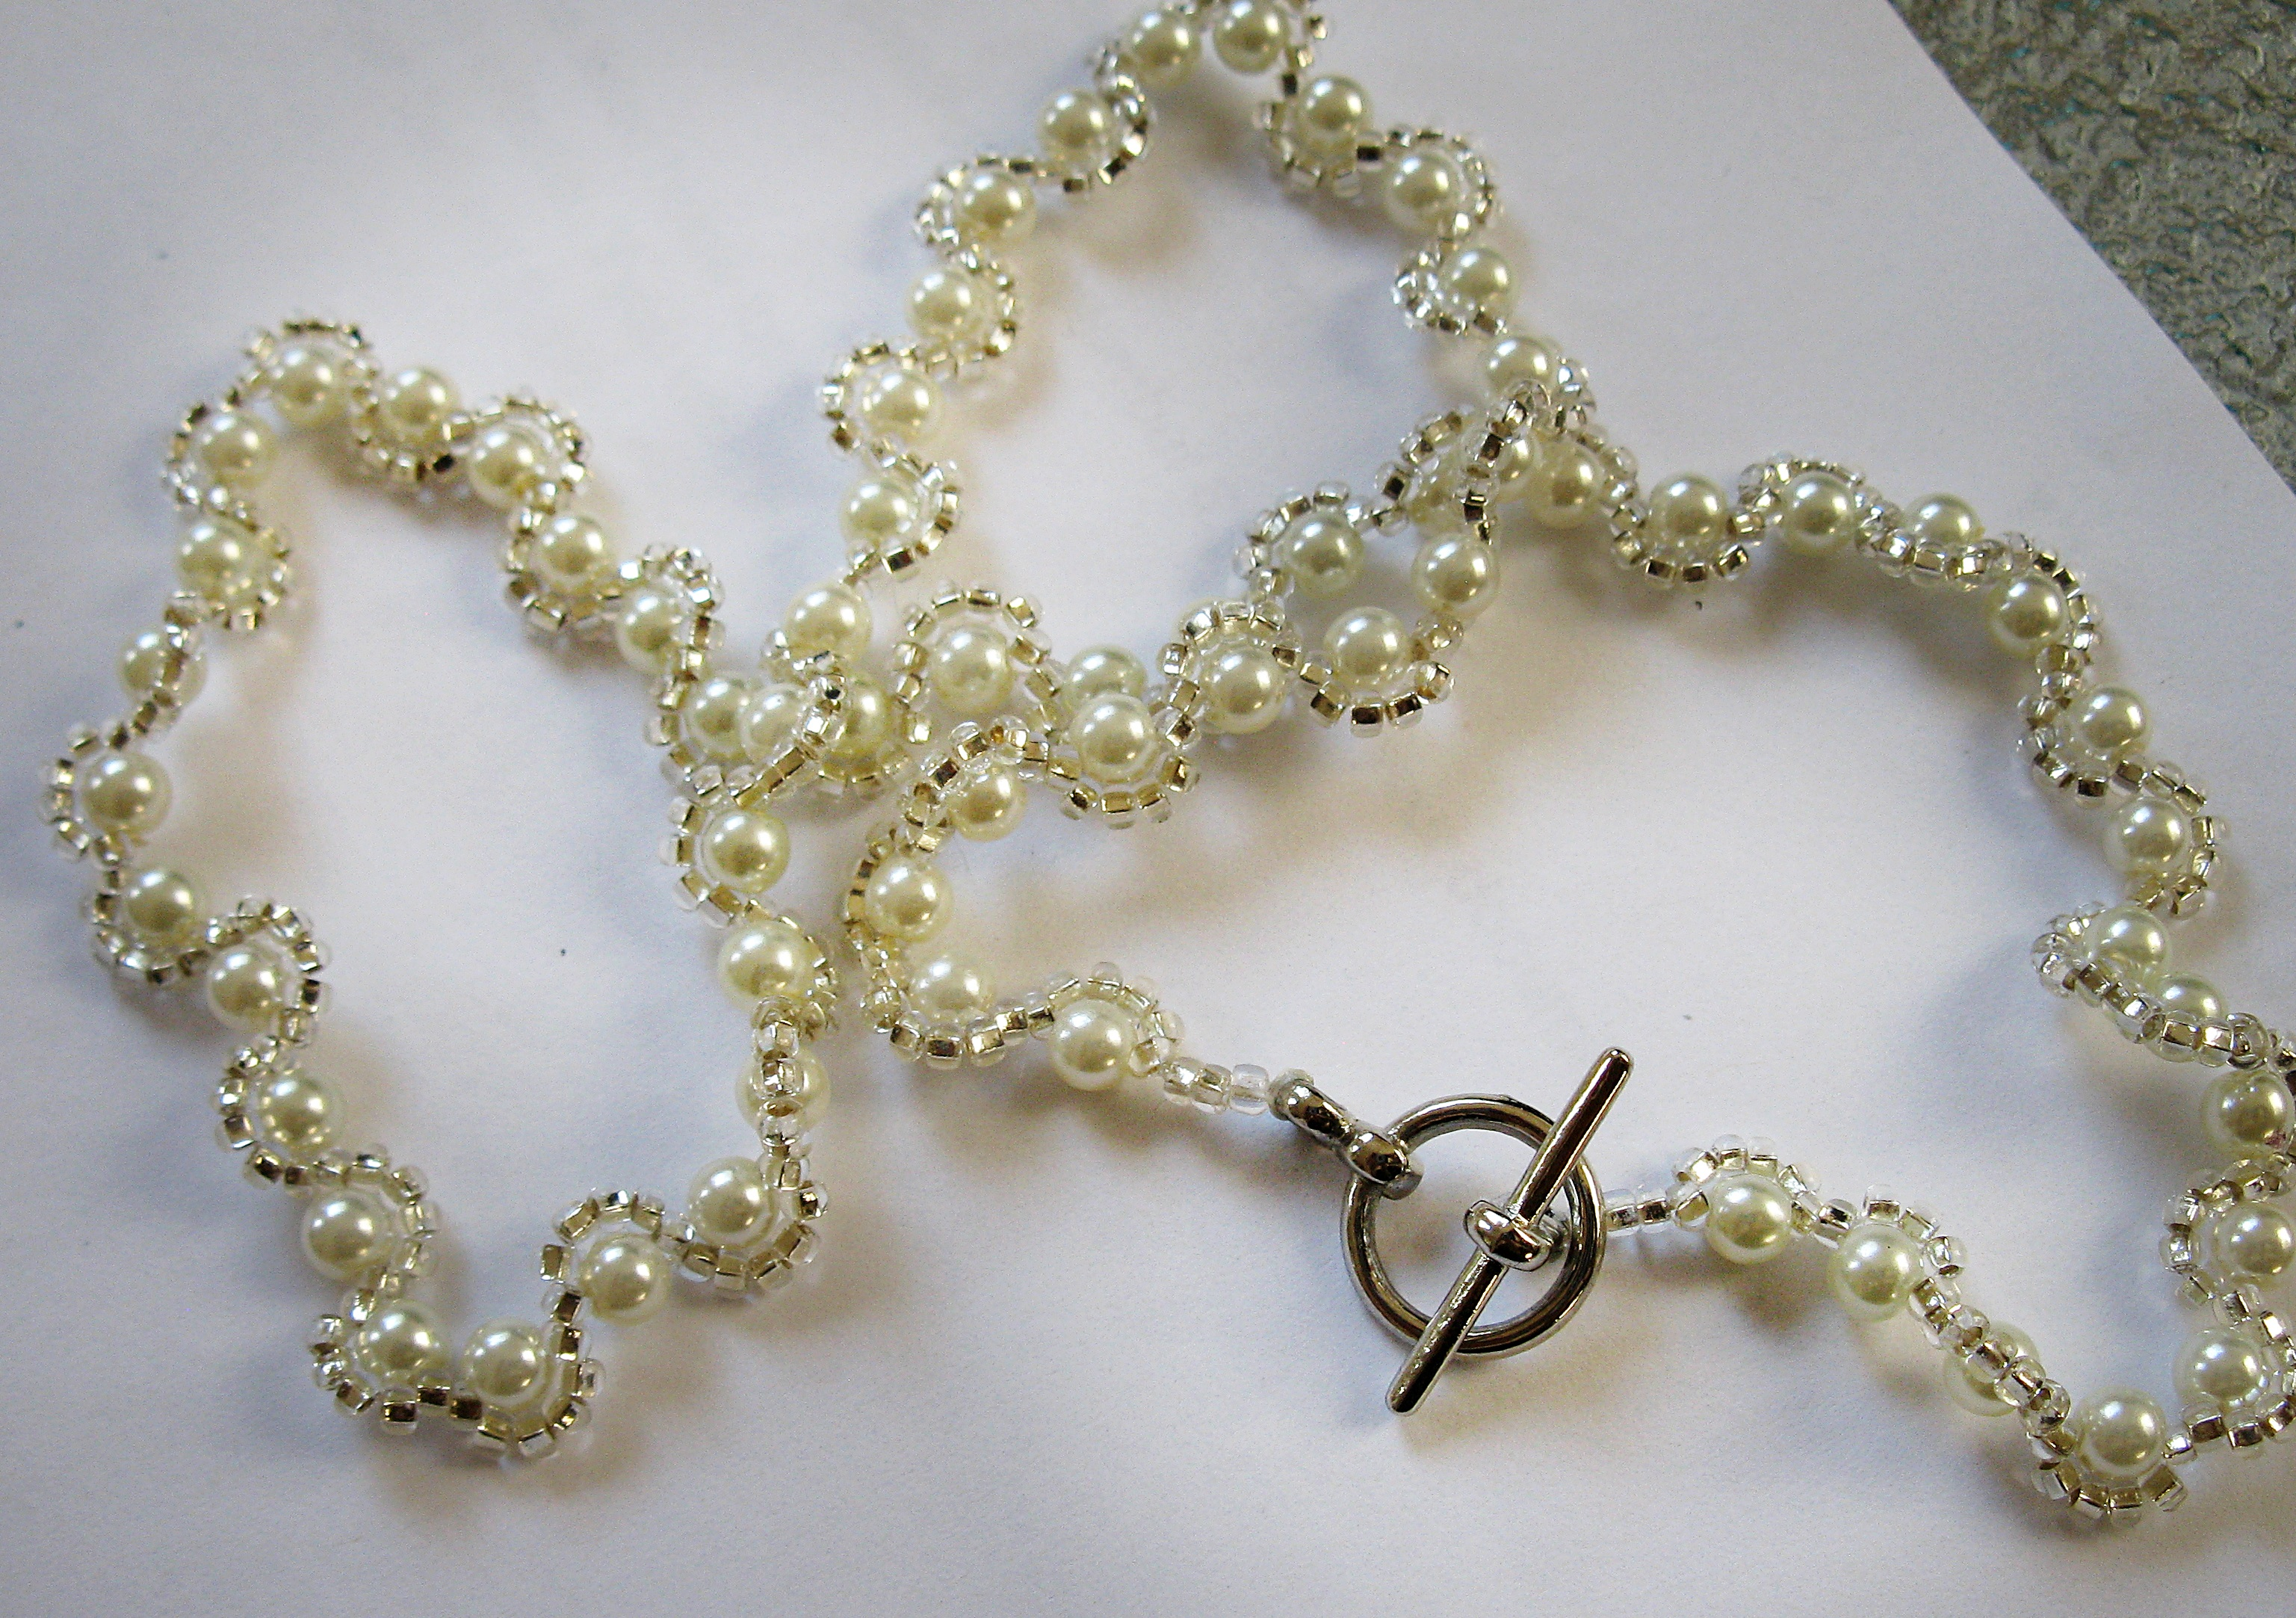 Silver and white with toggle clasp